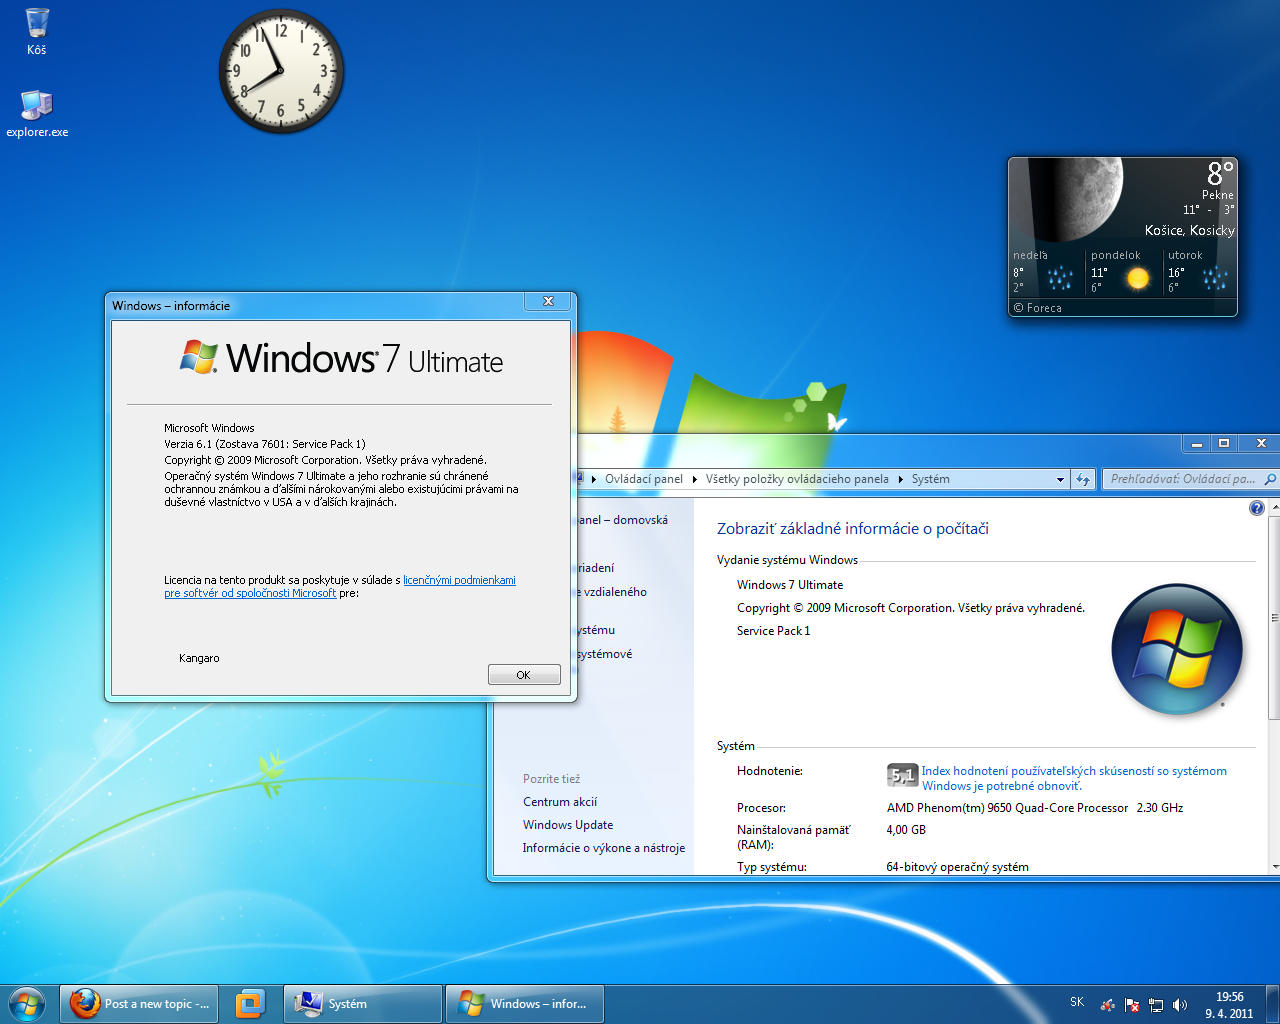 how to know the latest windows update on xp